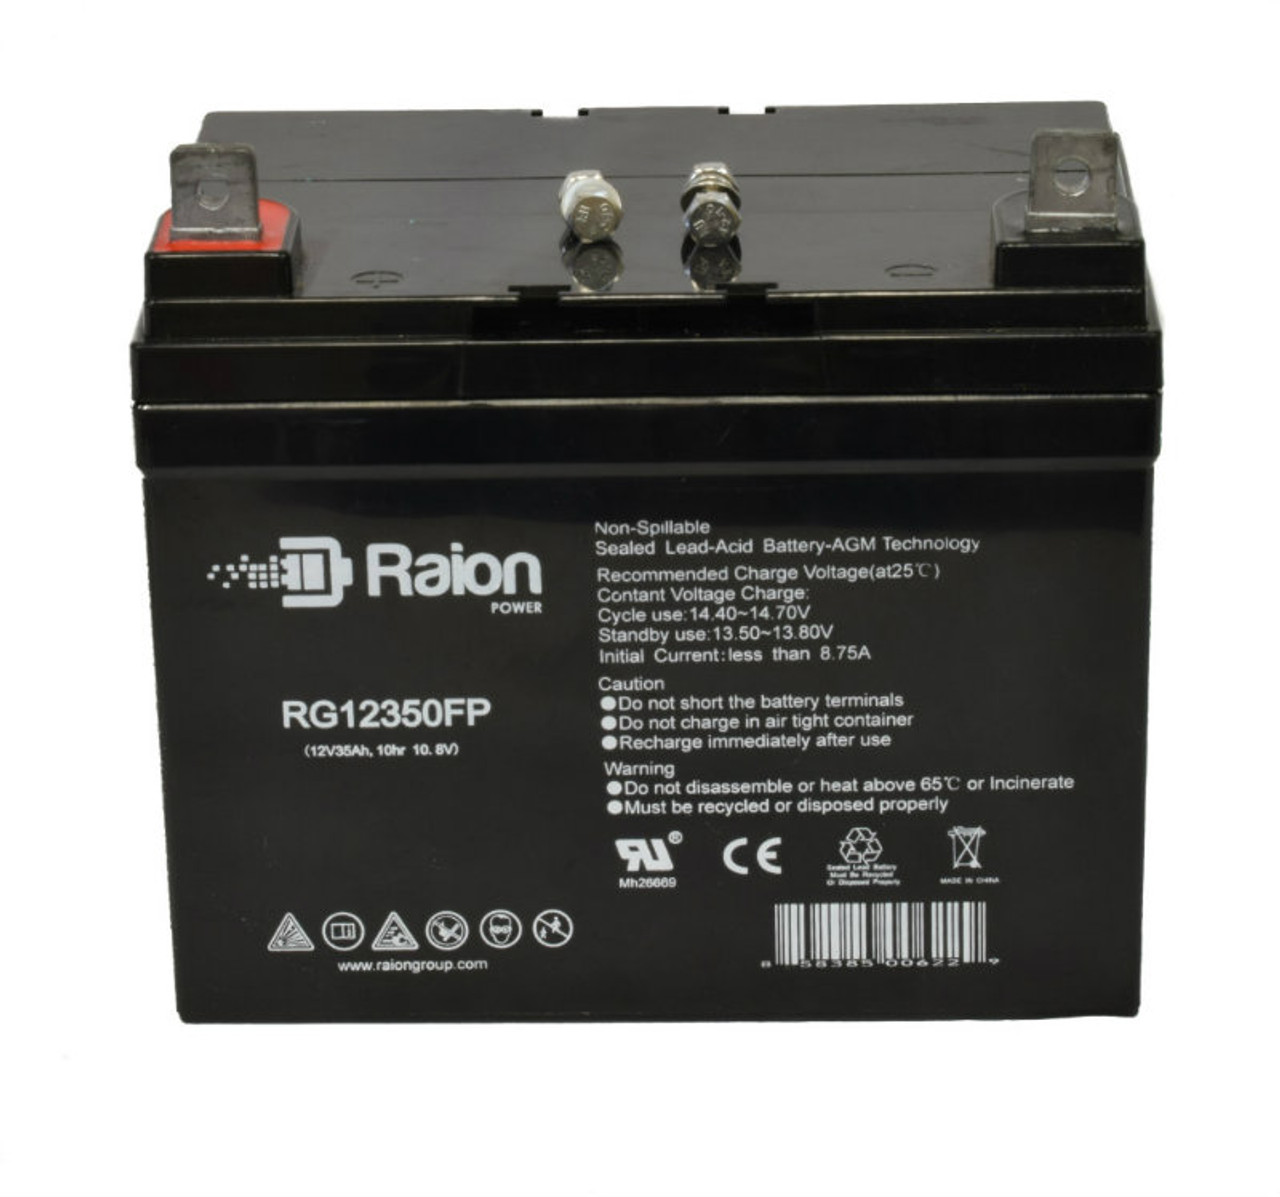 RG12350FP Sealed Lead Acid Battery Pack For Golden Technology Golden Companion Mobility Scooter